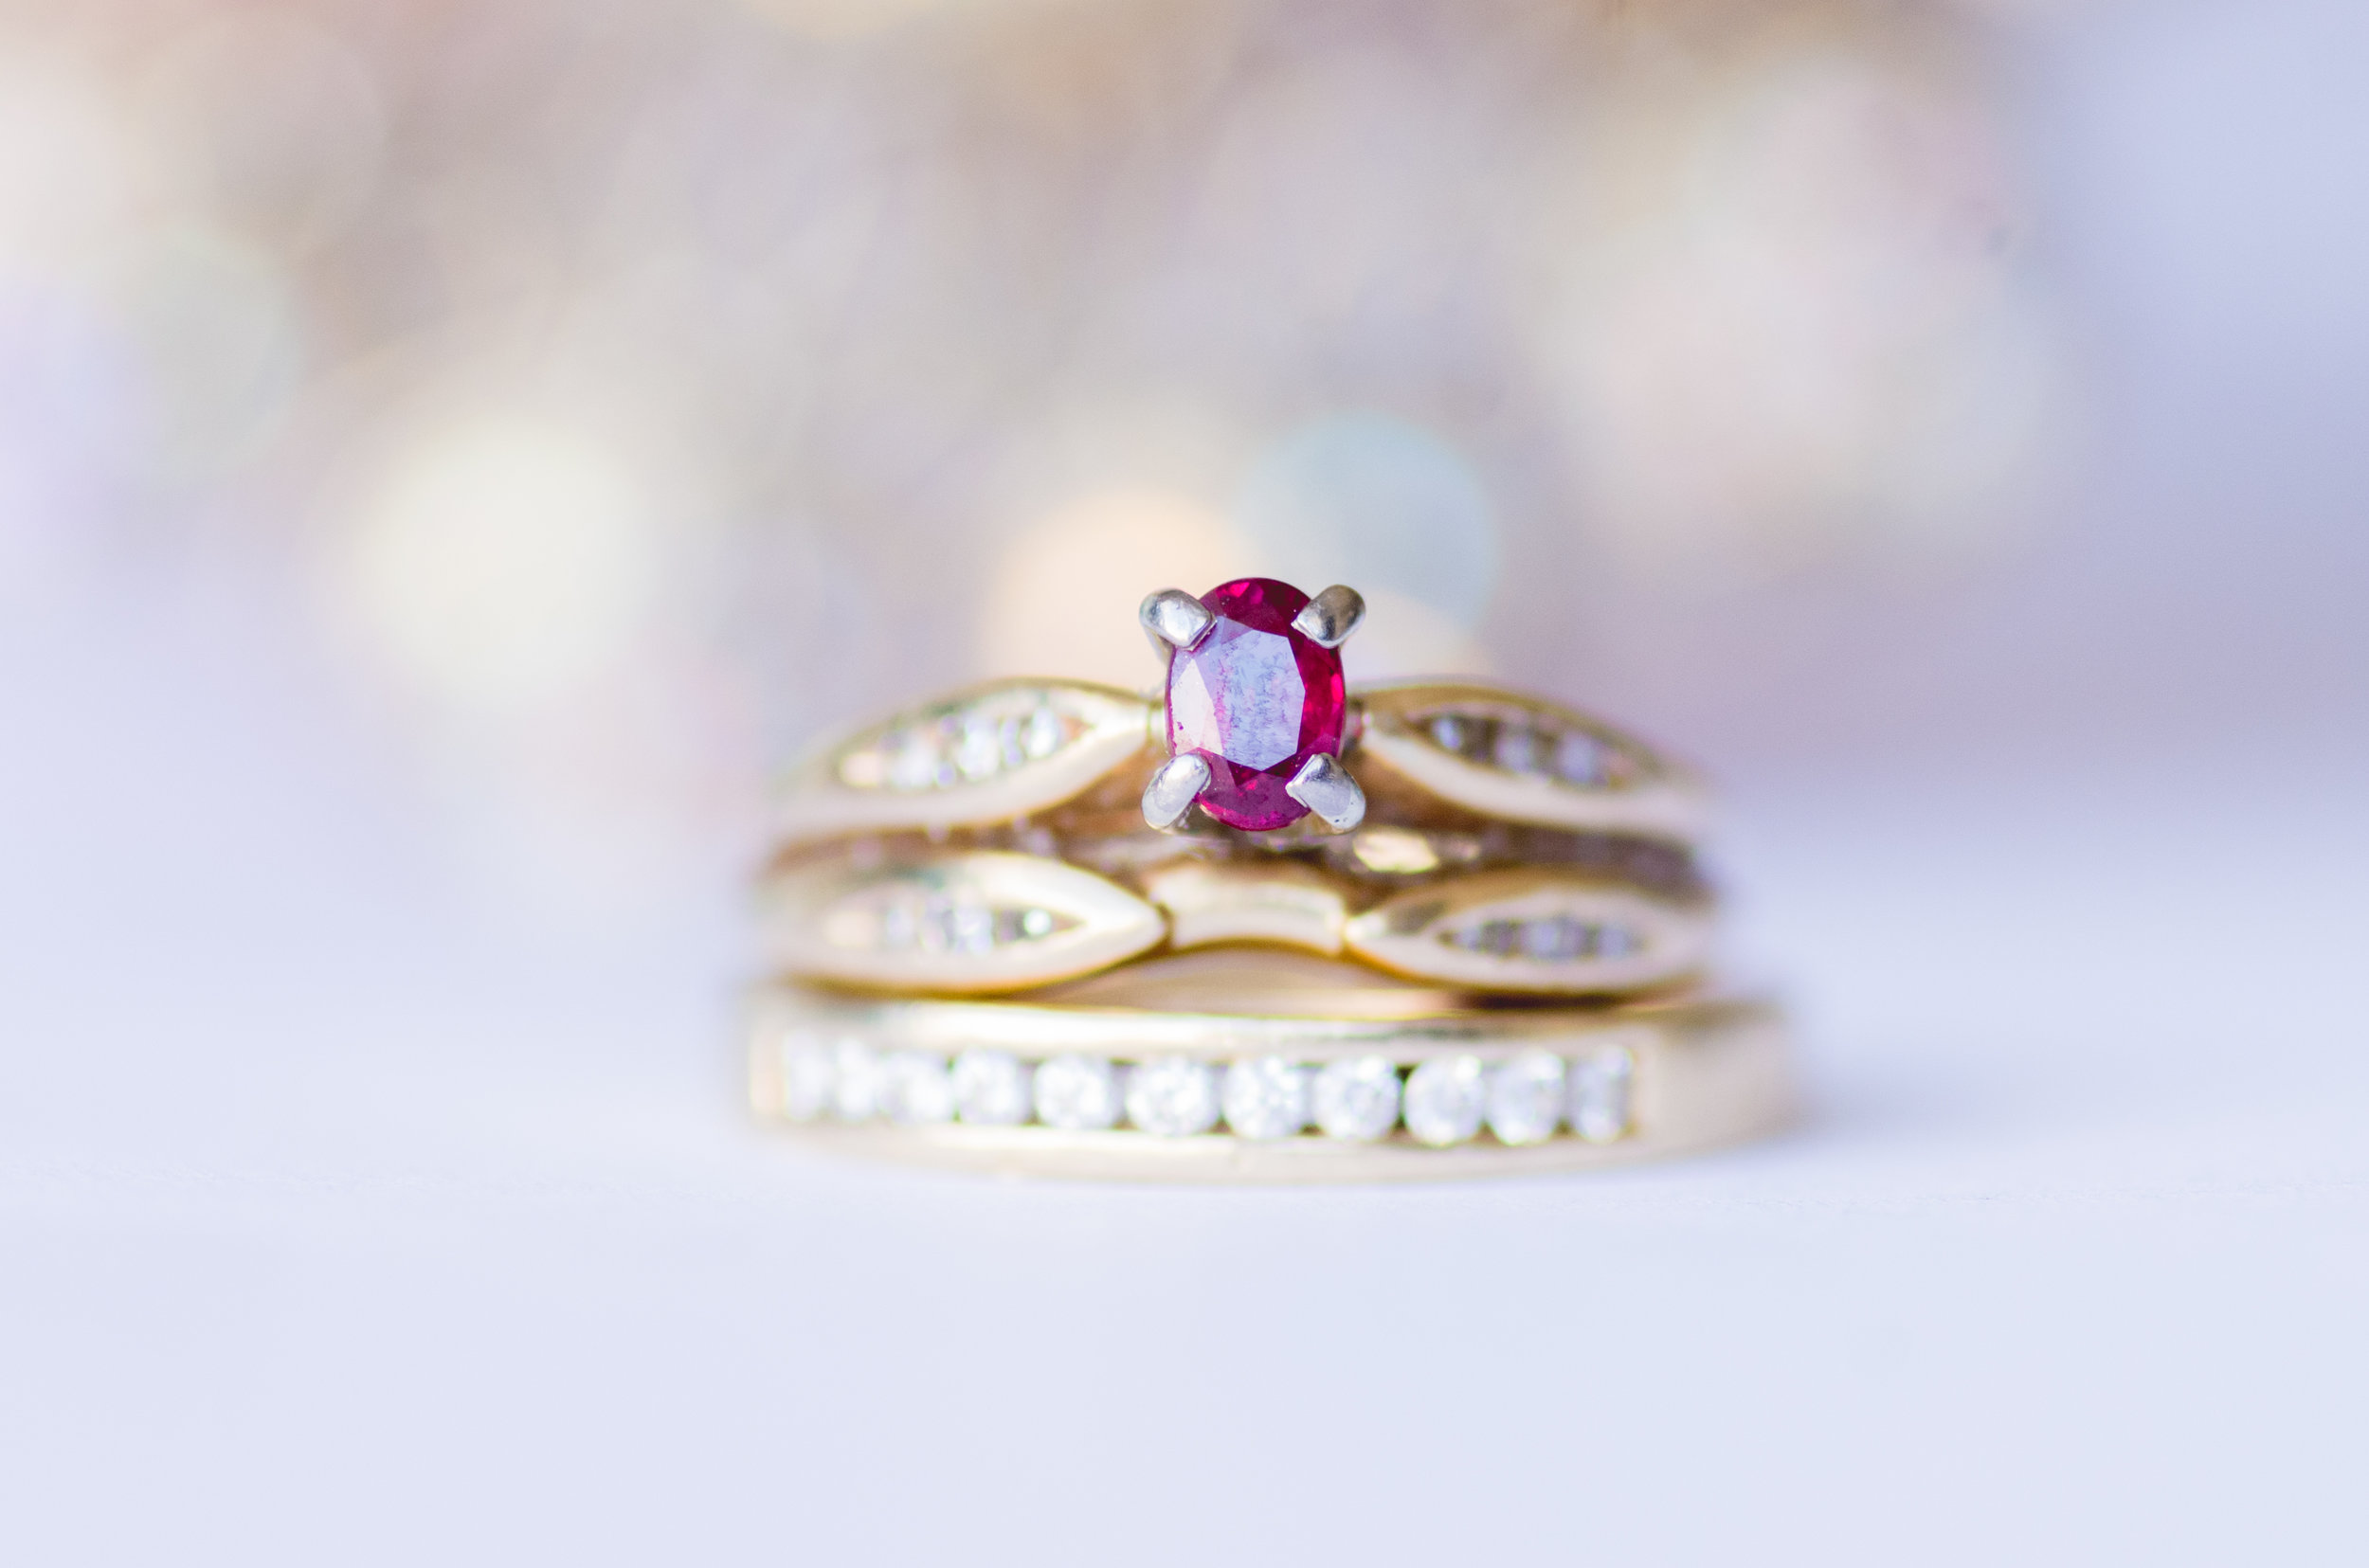 Ruby Wedding Ring Captured by Let There Be Light Photo in Calgary